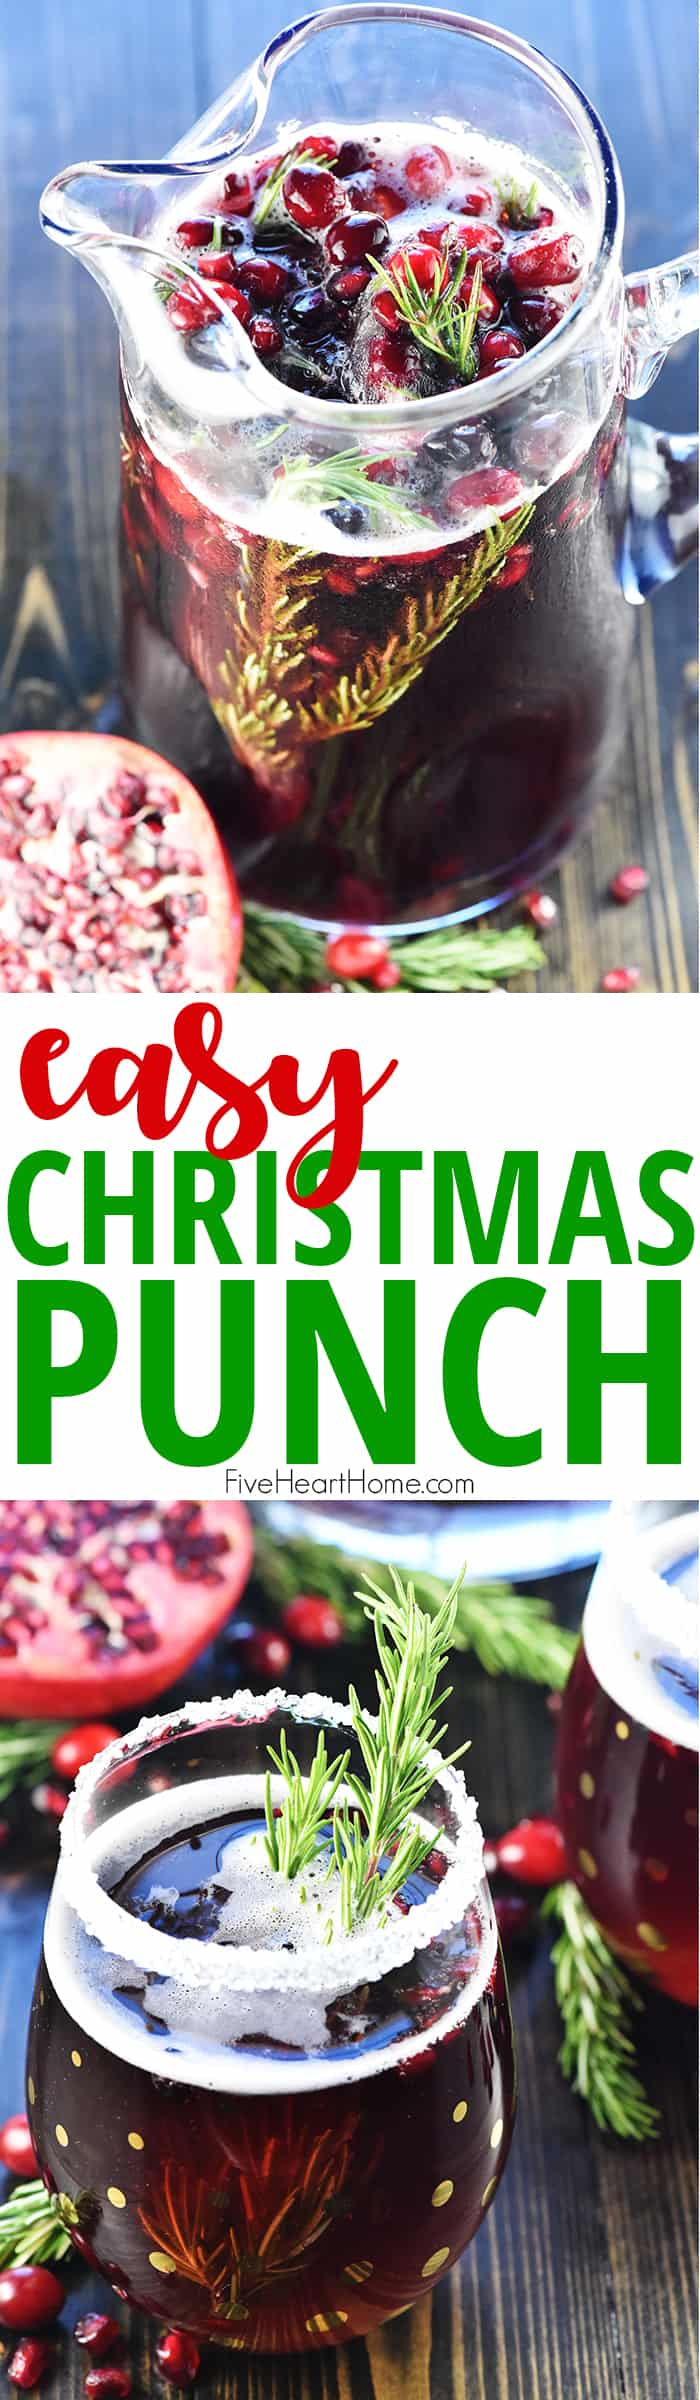 Easy Christmas Punch ~ a festive, sparkling, boozy holiday beverage featuring champagne, pomegranate juice, and cranberry juice that's perfect for Christmas or New Year's Eve parties...and it's easy to make a non-alcoholic version as well! | FiveHeartHome.com